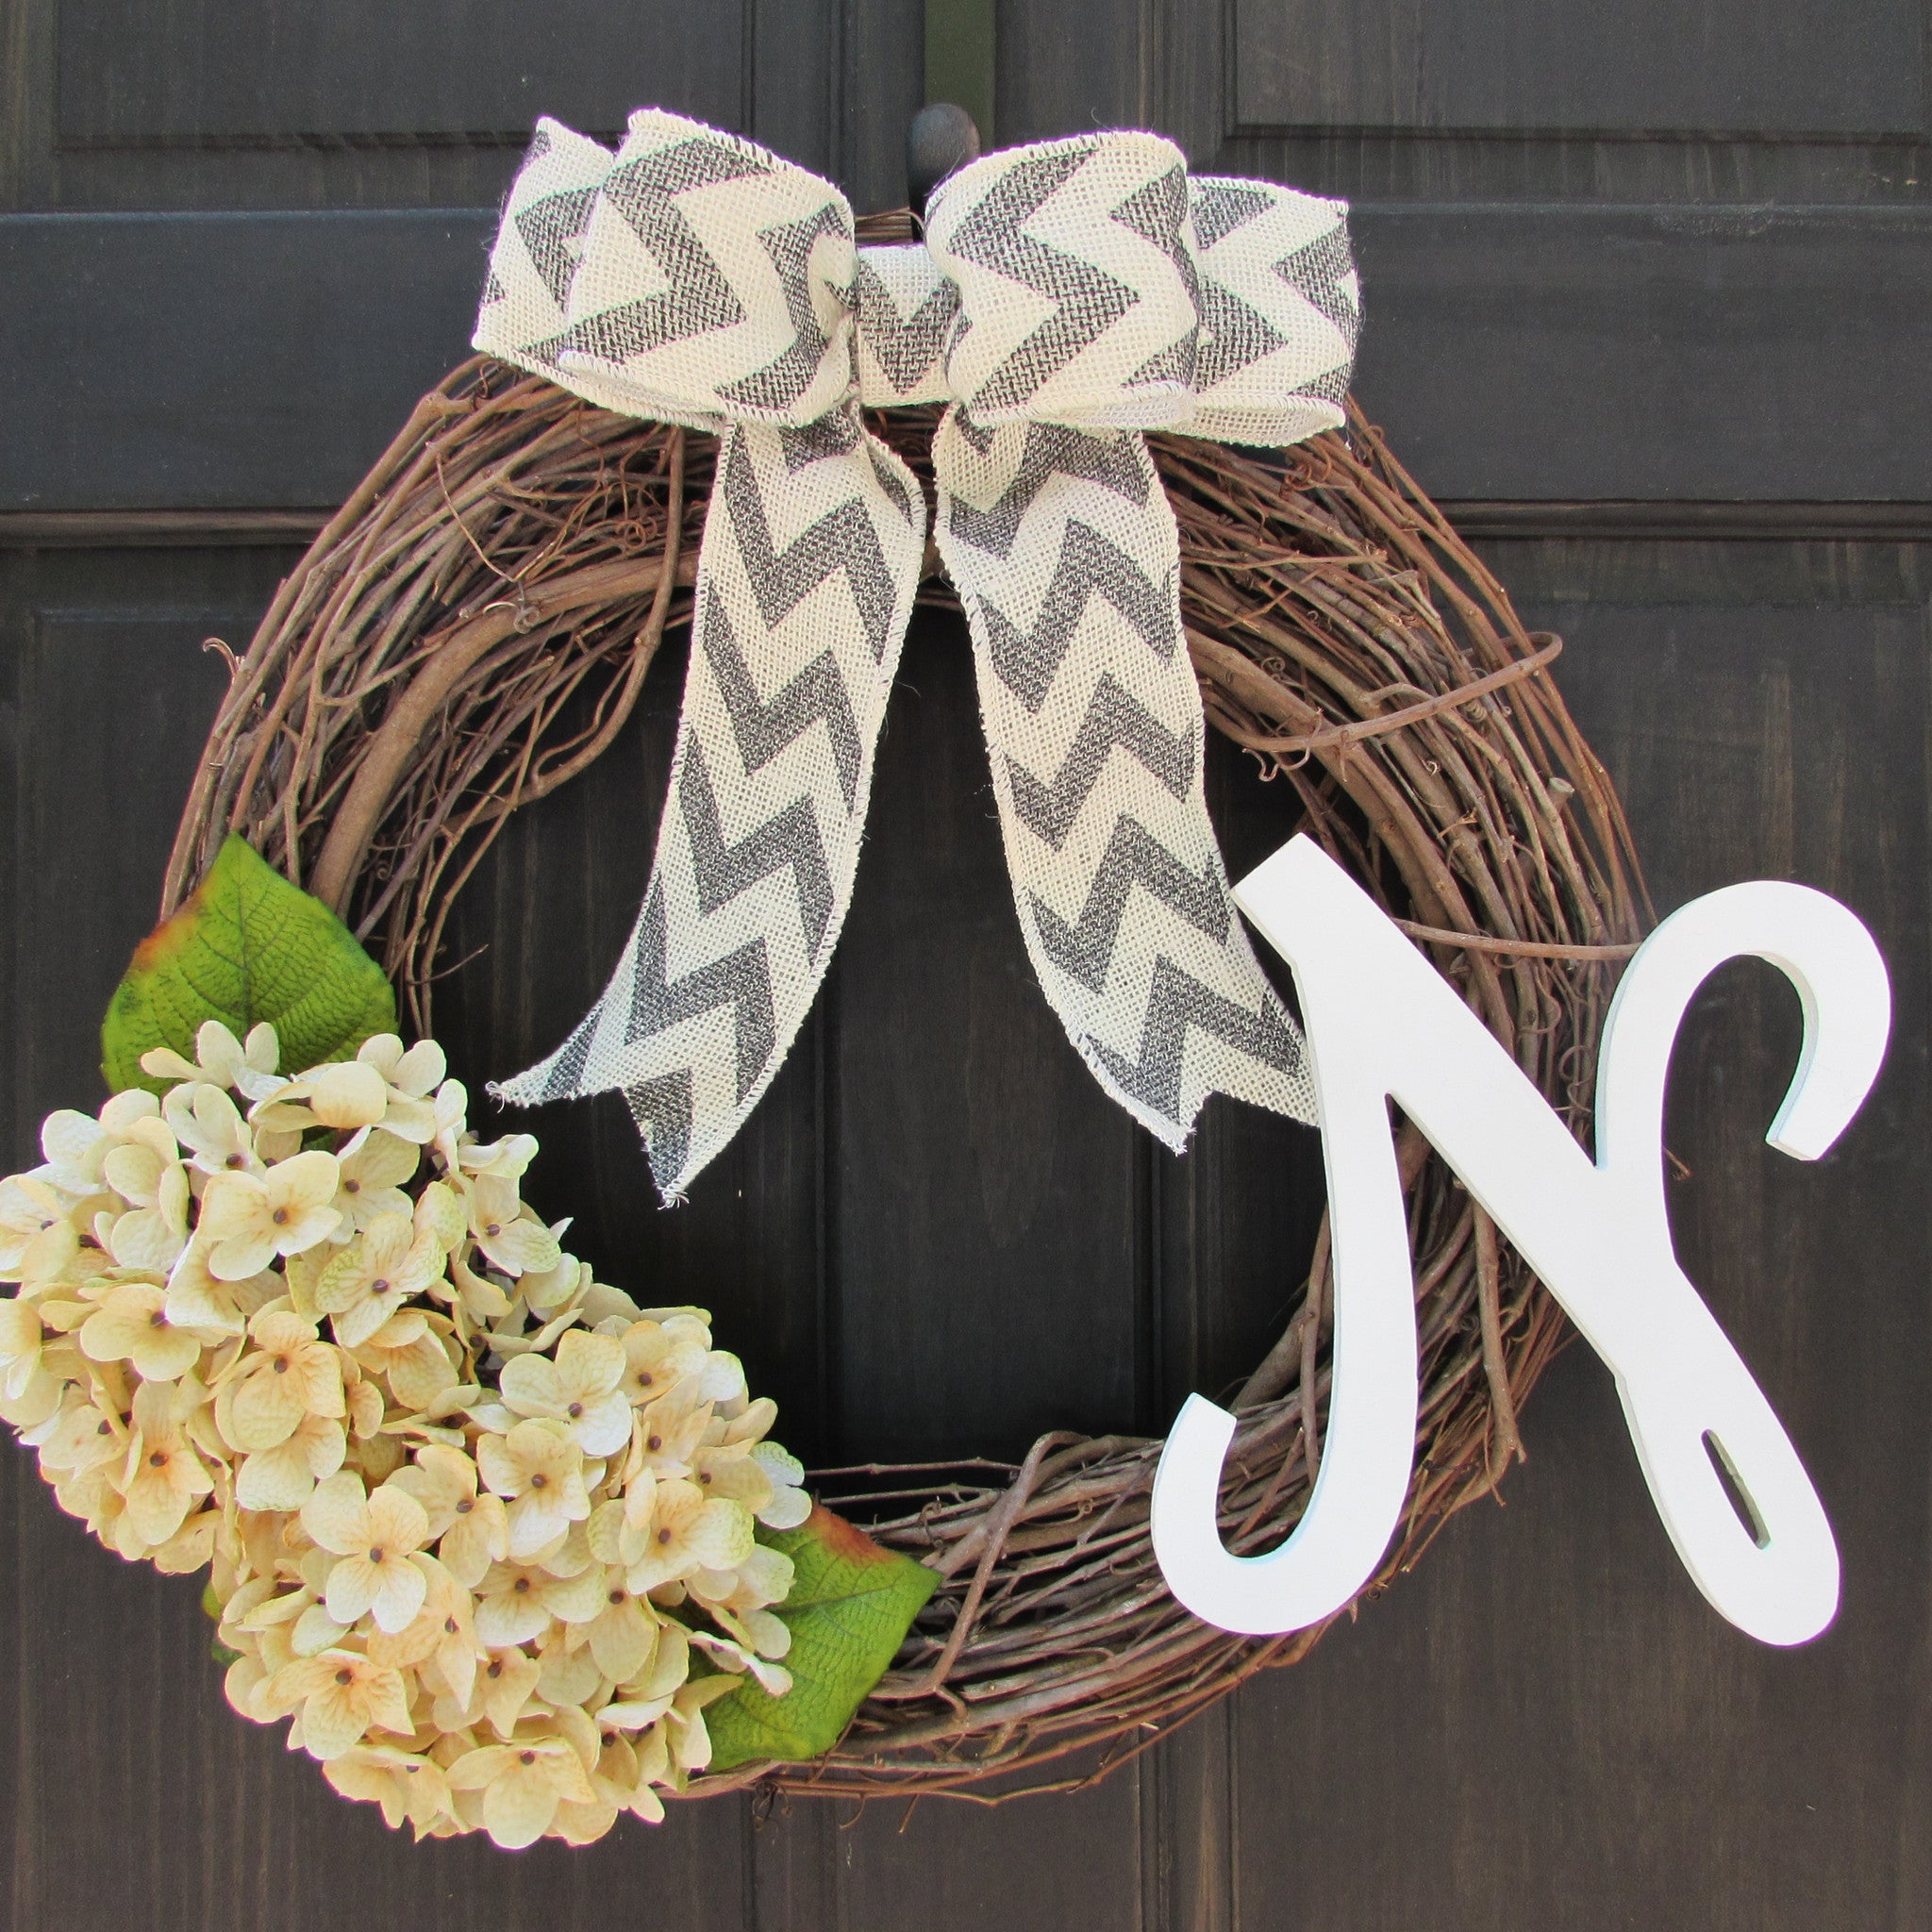 Front door decor for all seasons - Cream Hydrangea Wreath With Monogram Initial Wreath For Year Round Front Door Decor All Season Monogram Wreath Personalized Wreath